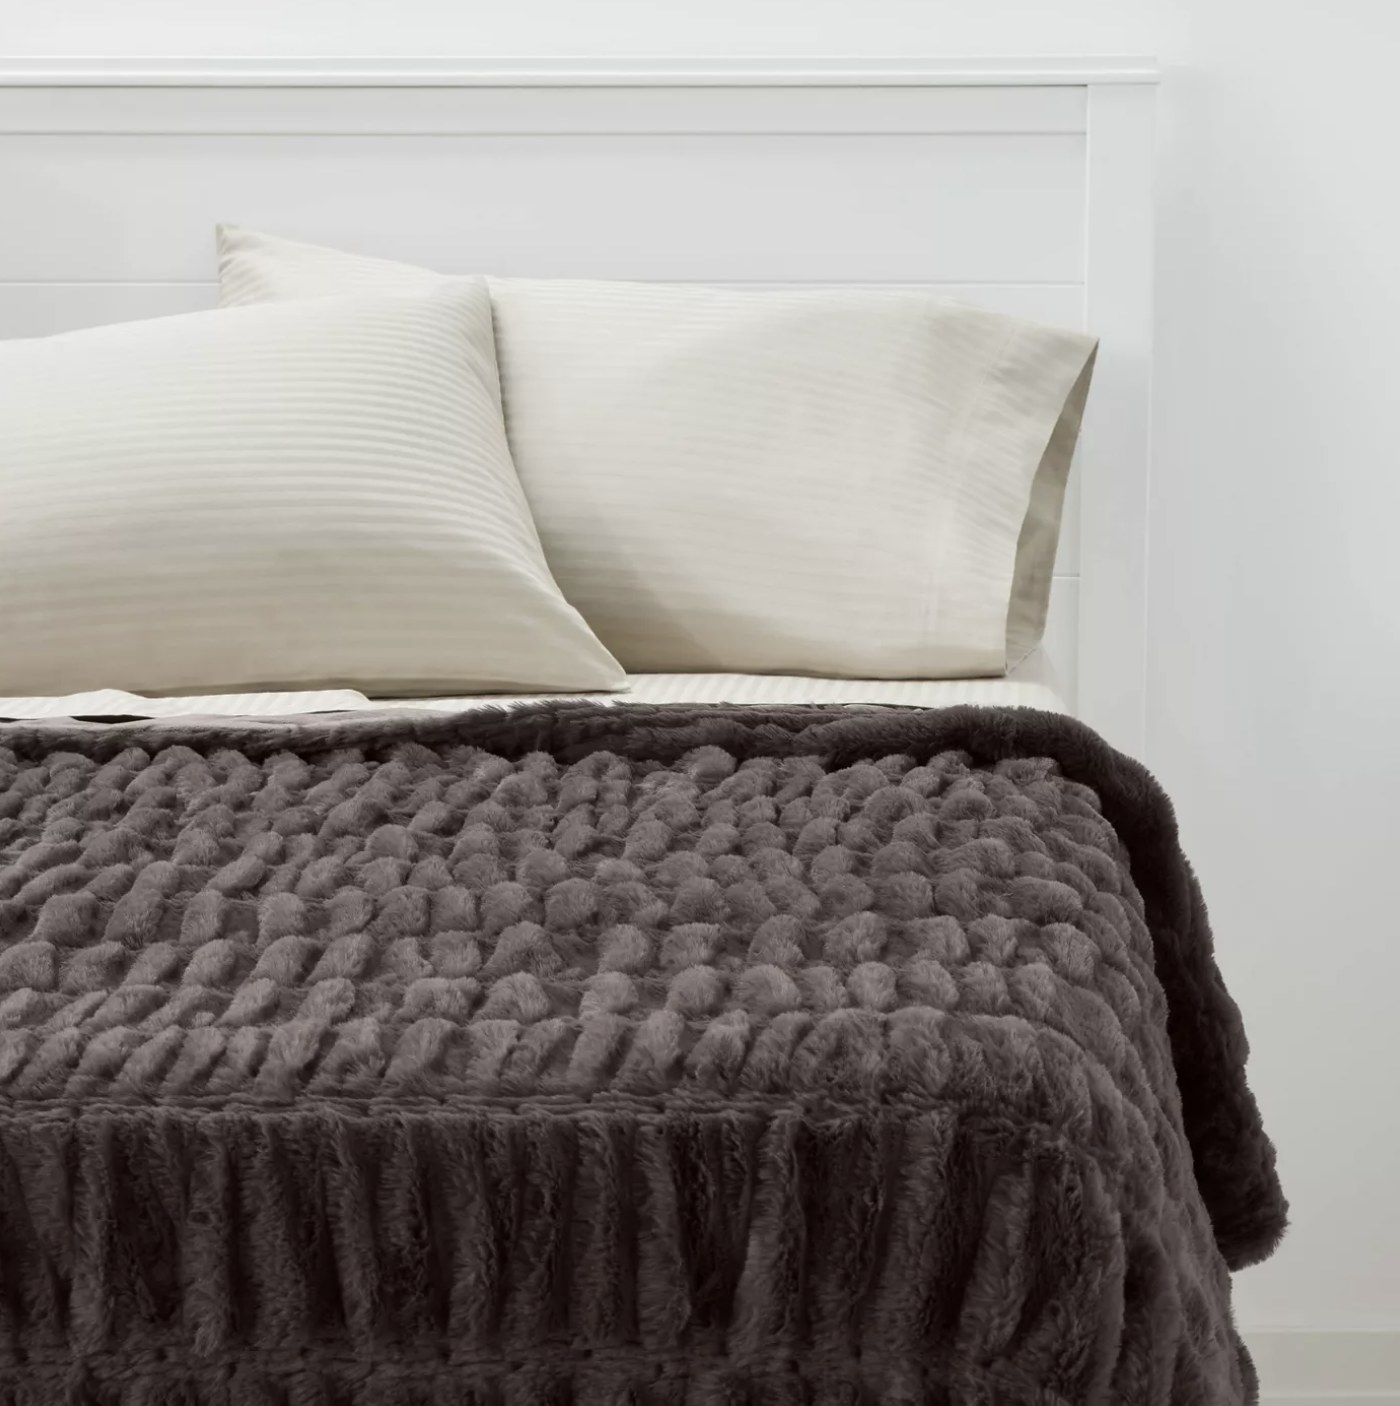 The brown faux fur throw blanket on a bed